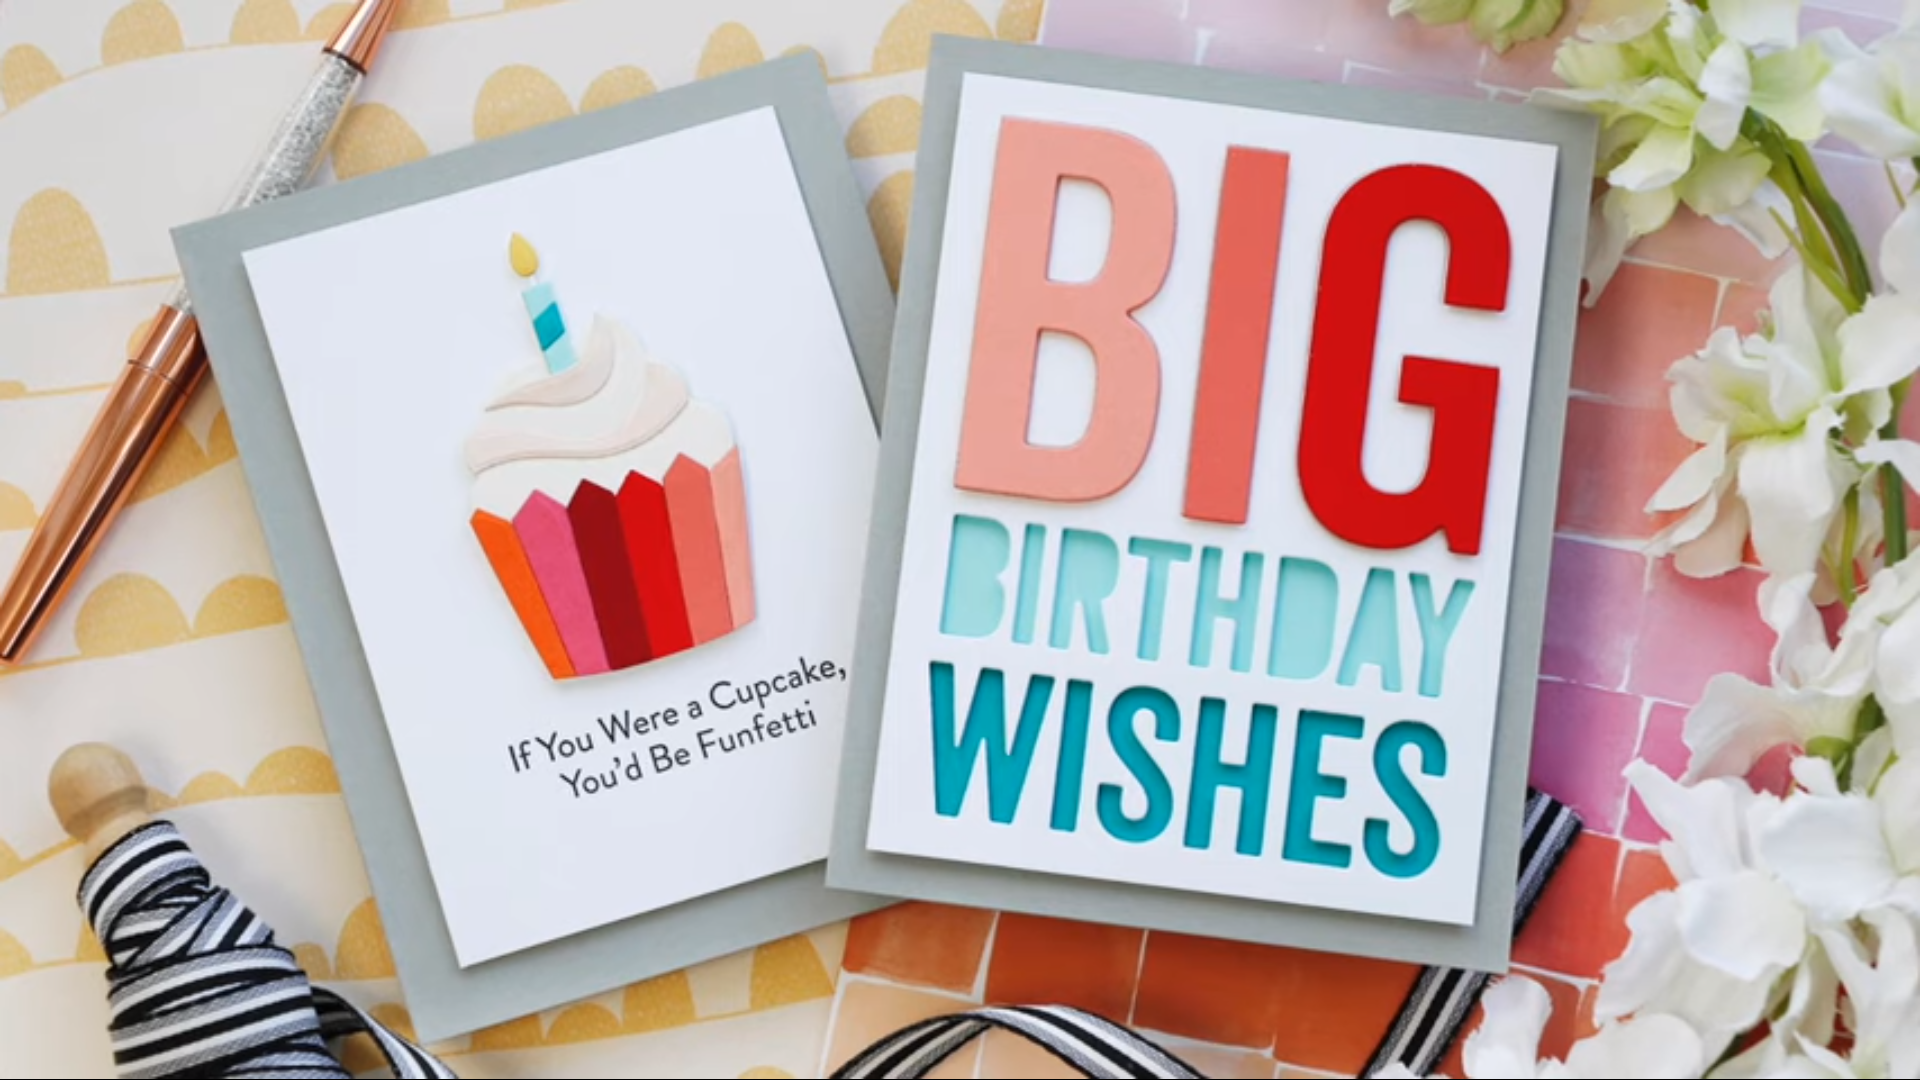 My Favorite Things Birthday Wishes Cards